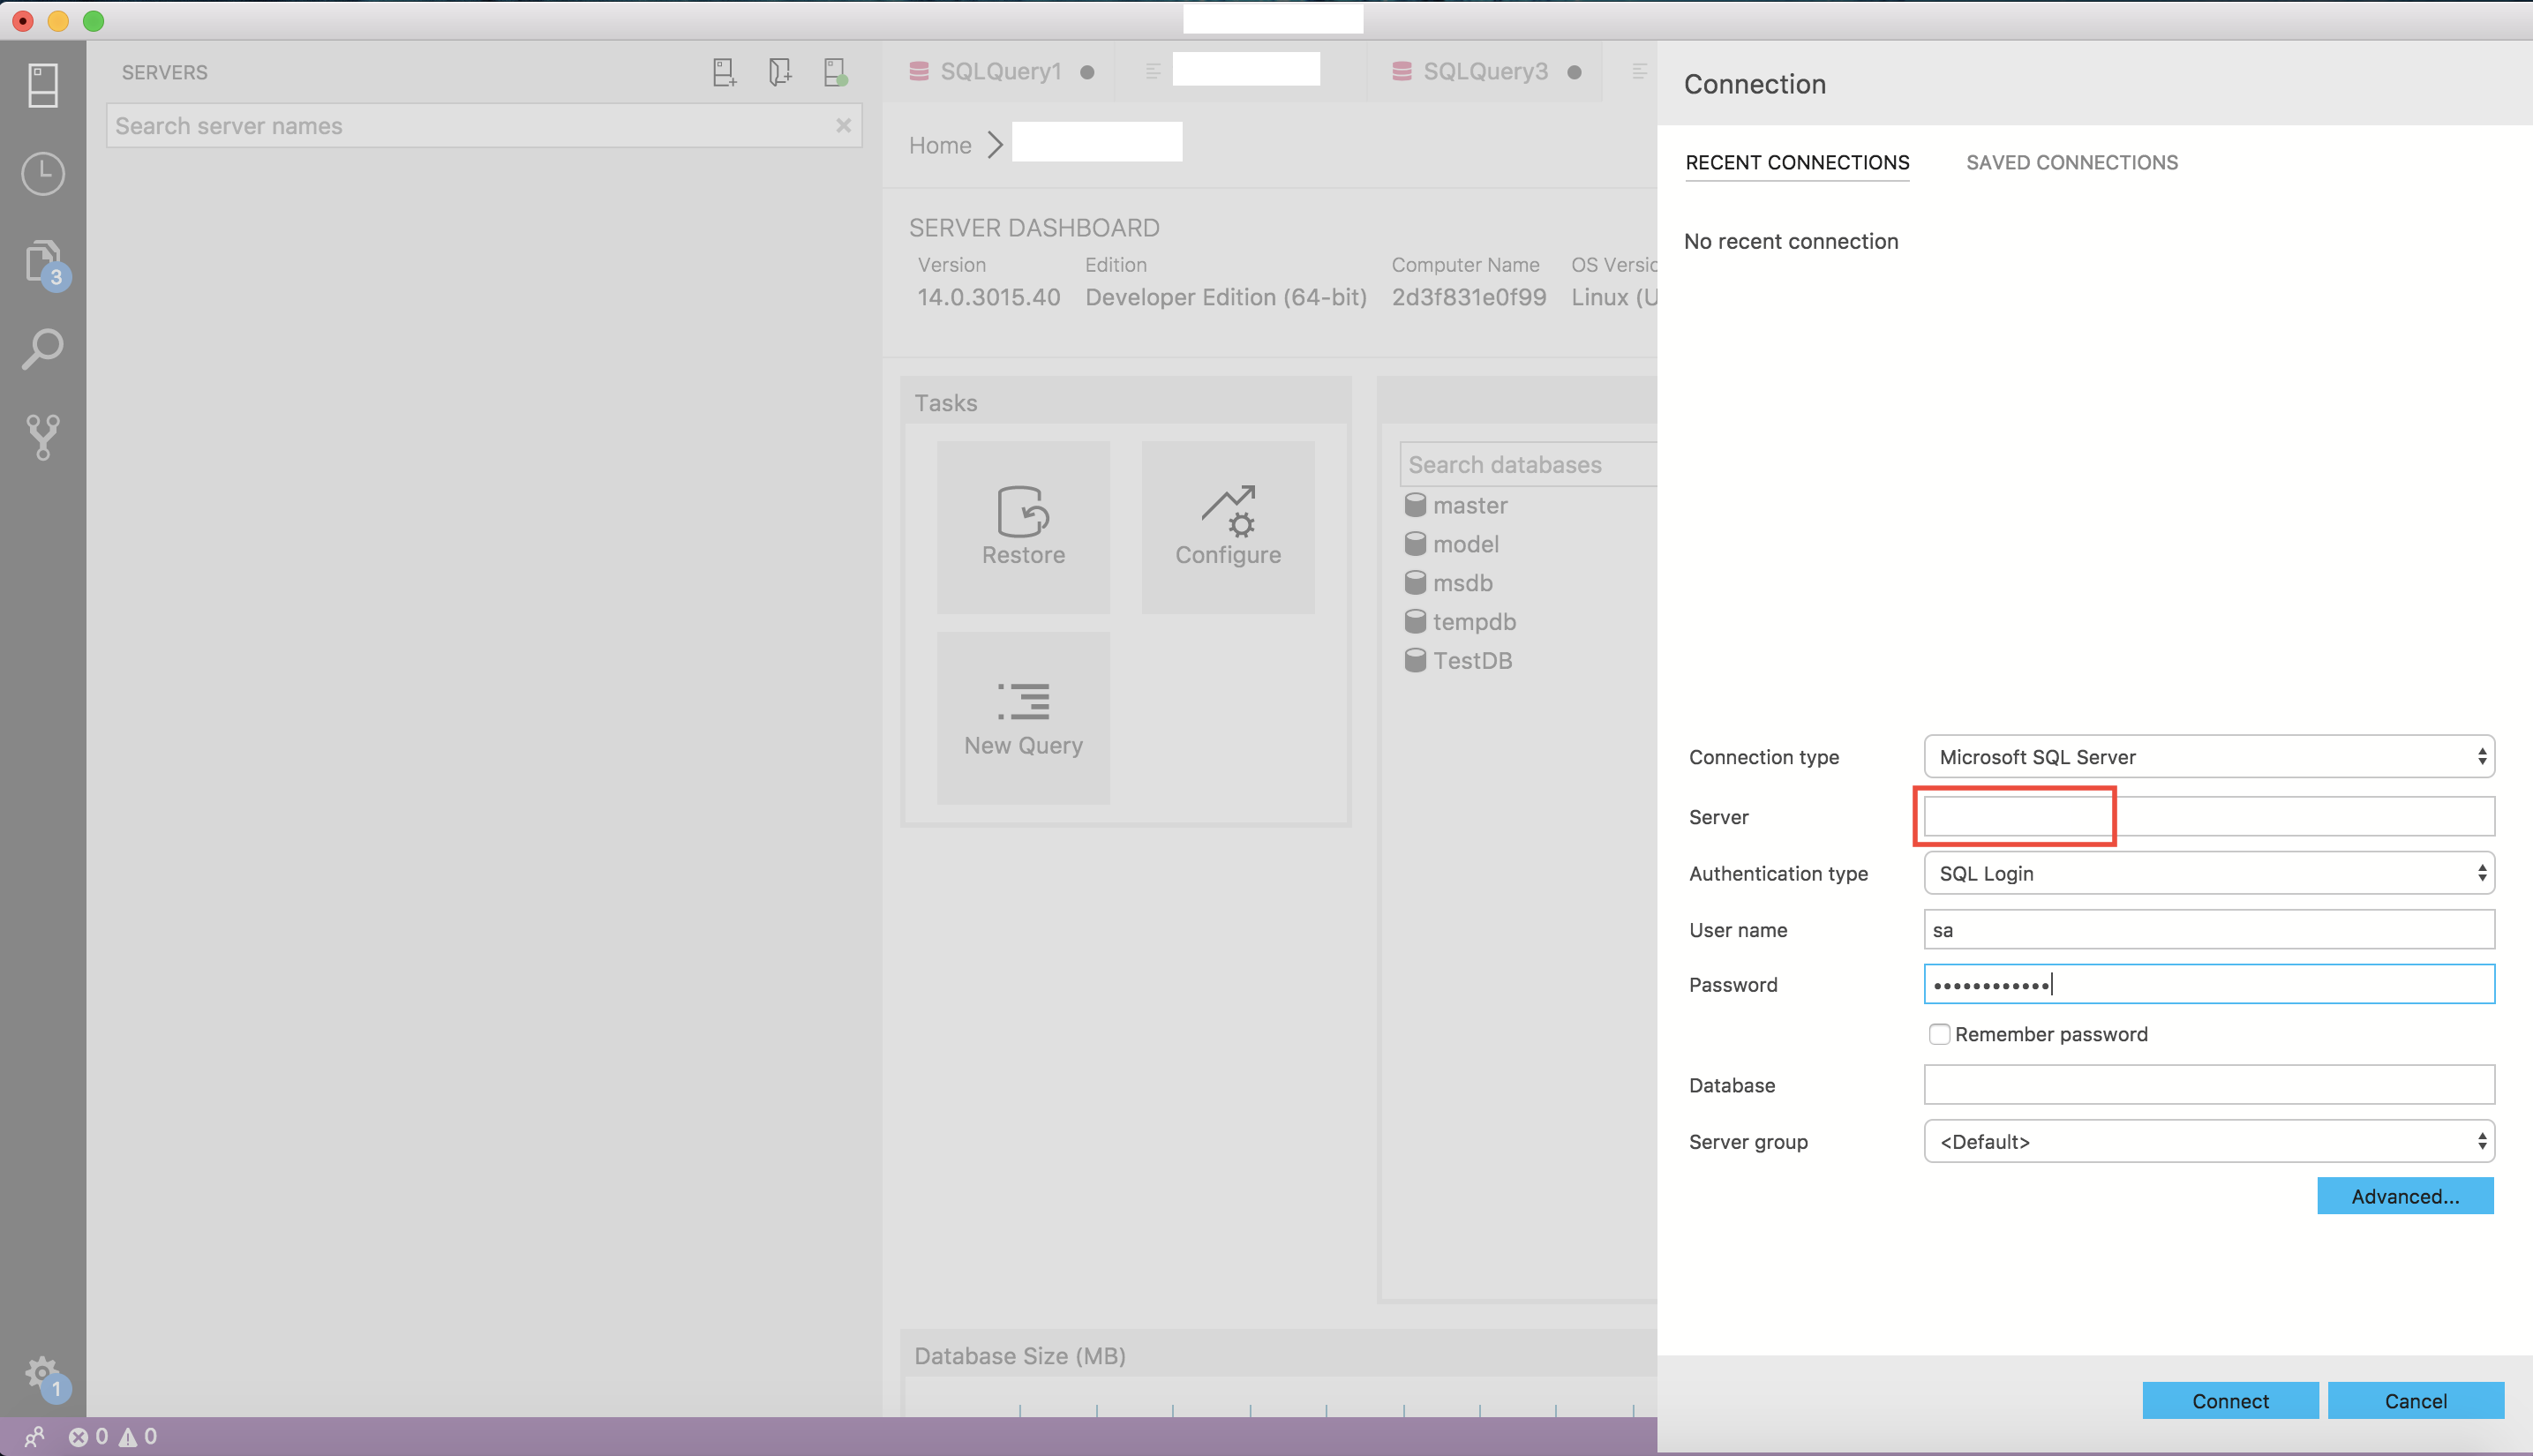 SQL Server 2017 in a Docker Container running on a Mac – Tips and Tricks    SQLSailor